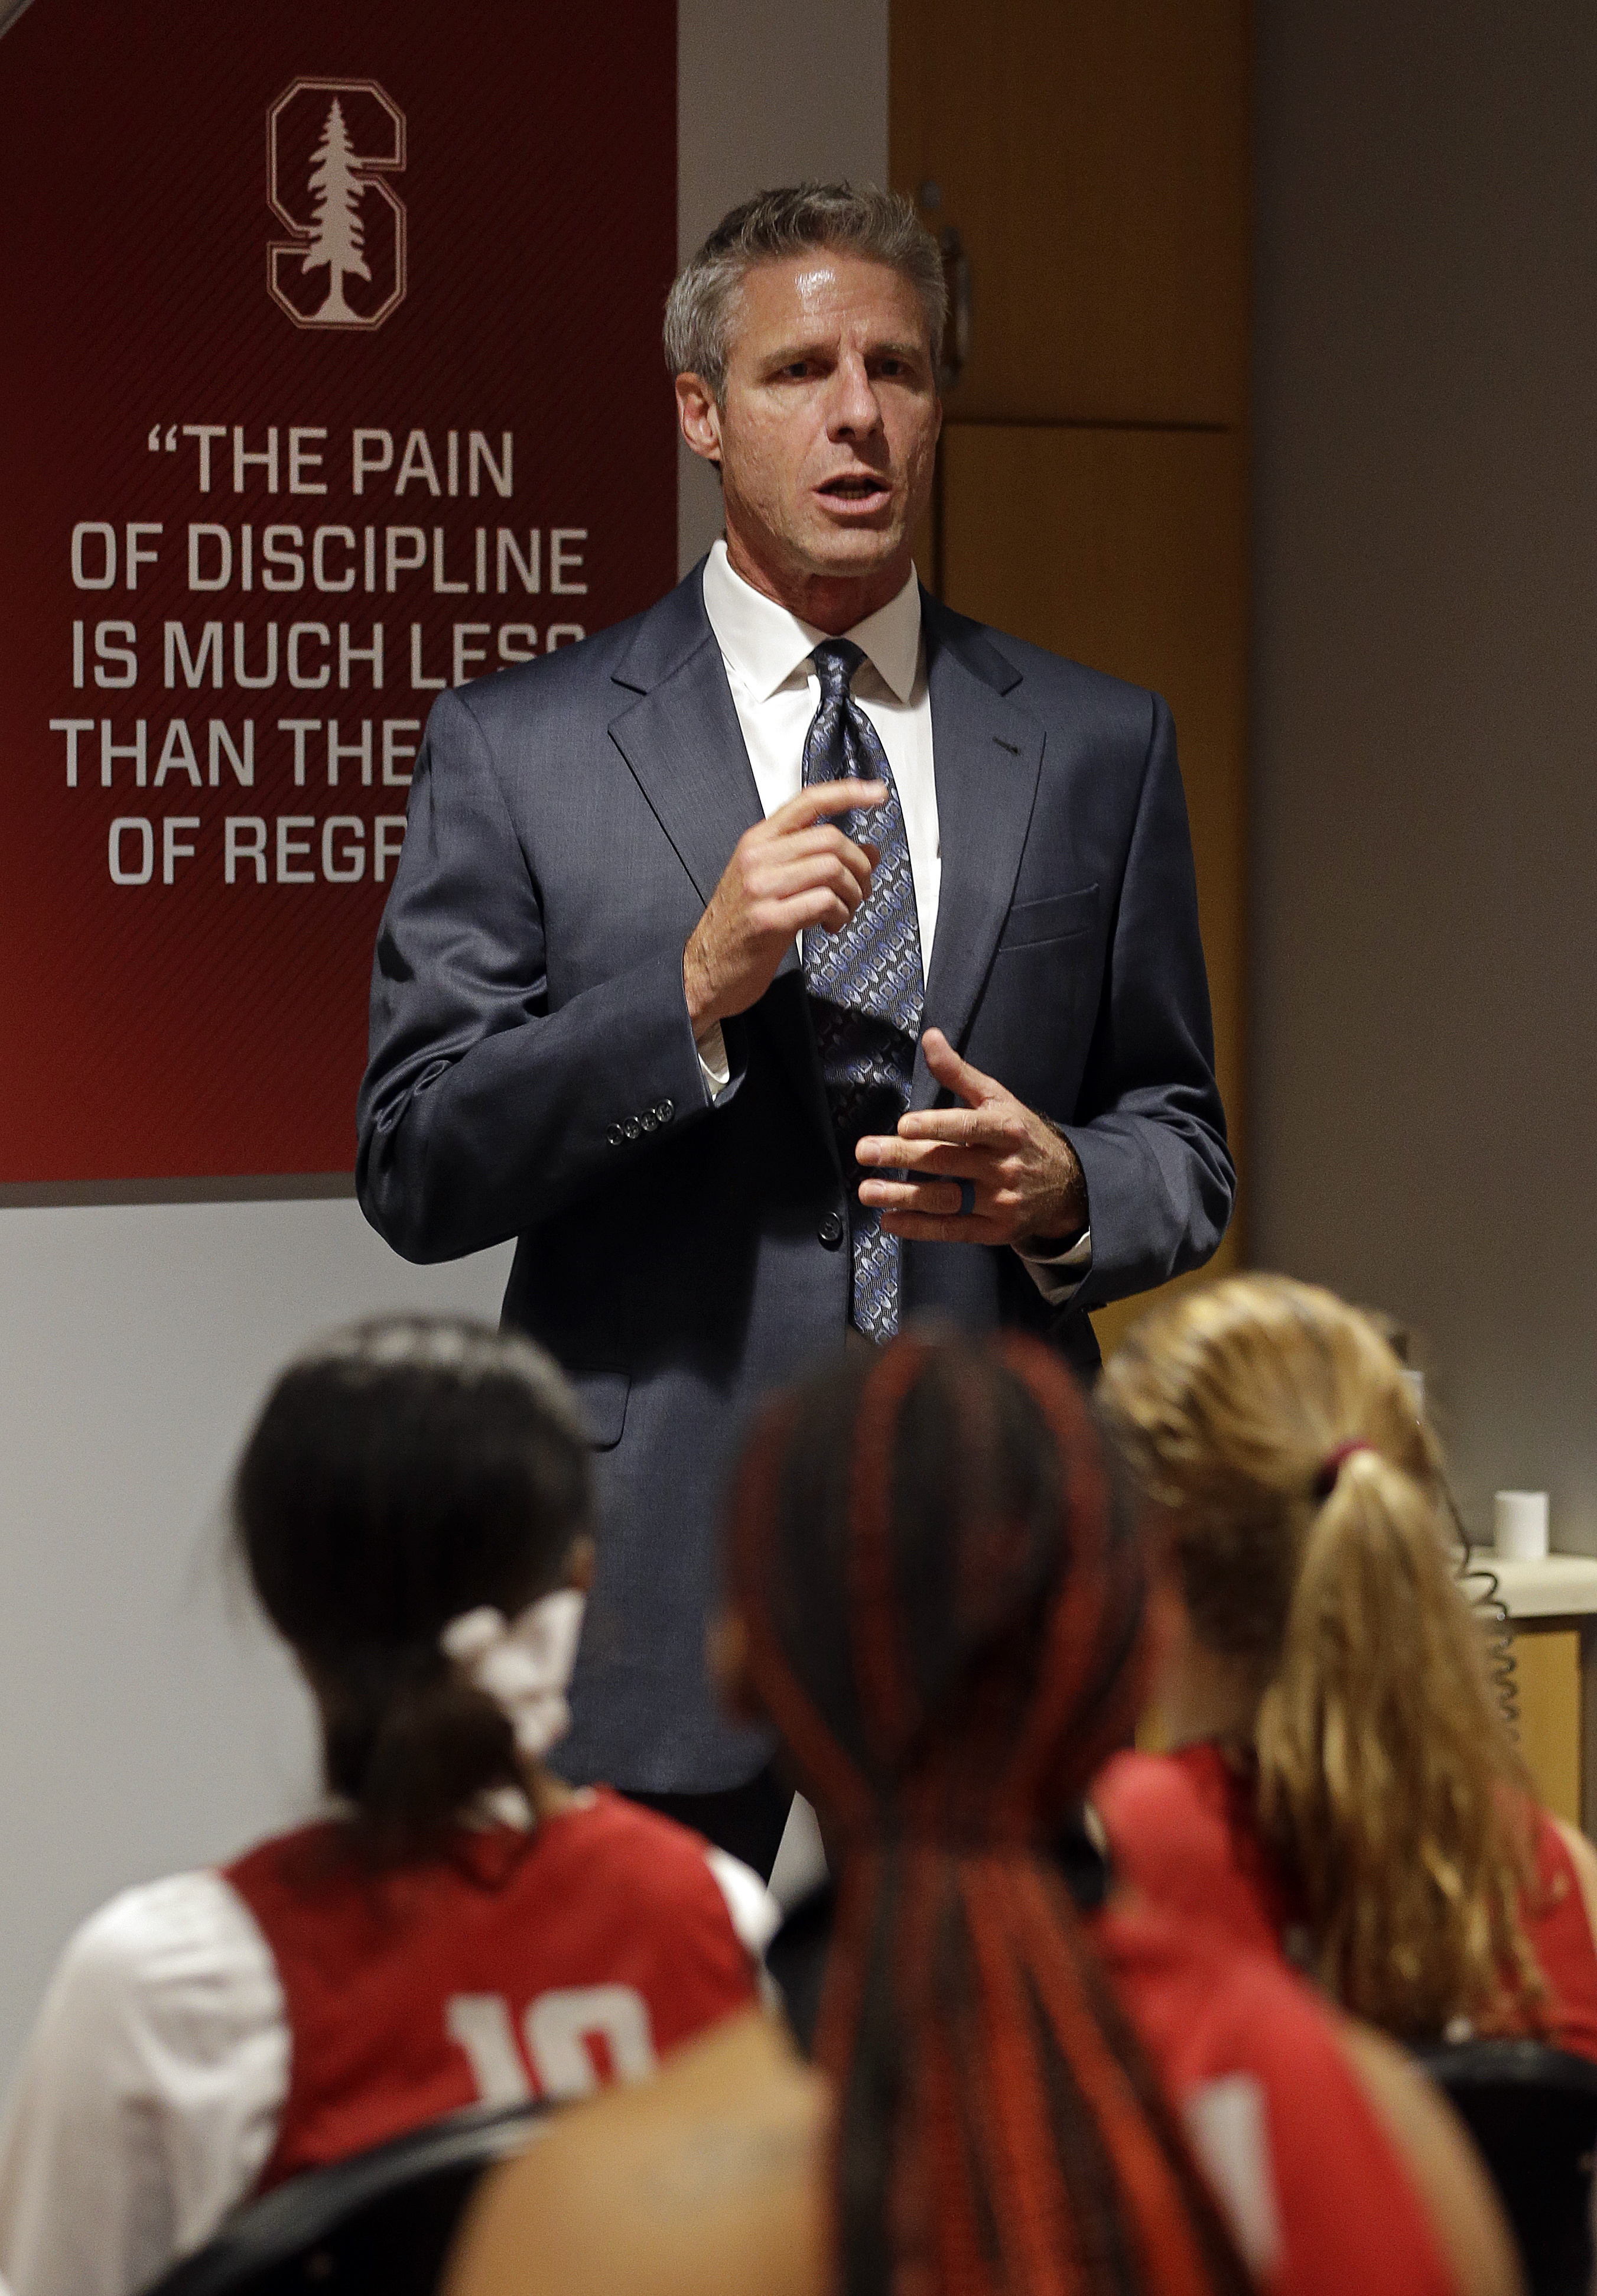 U.S. women's volleyball coach Karch Kiraly speaks to the Stanford women's basketball team Thursday, Nov. 10, 2016, in Stanford, Calif. The Stanford women's basketball team went through an on-campus communication workshop to improve conversation on and off